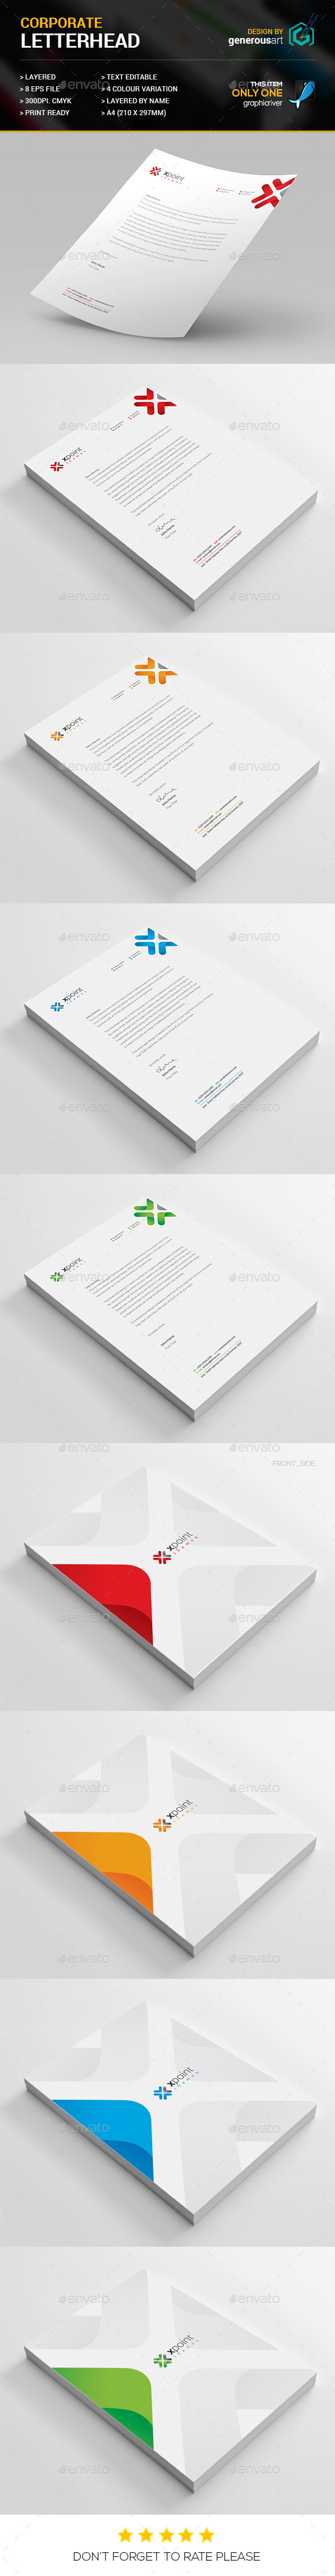 X Point Letterhead - Stationery Print Templates